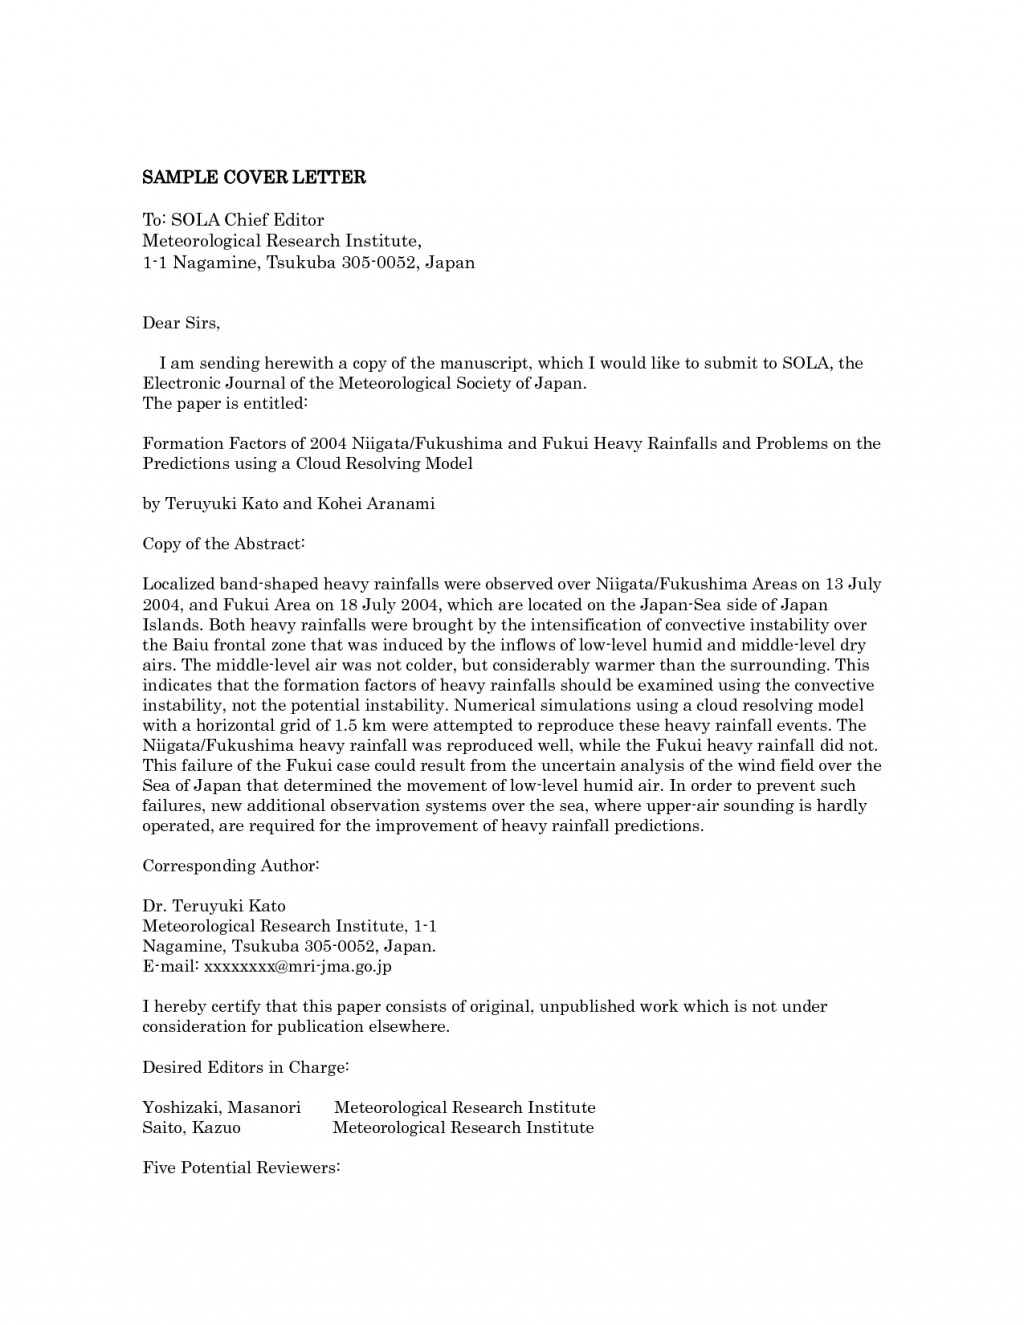 014 Research Paper Editor Cover Letter Breathtaking Free Professional Editors Software Large